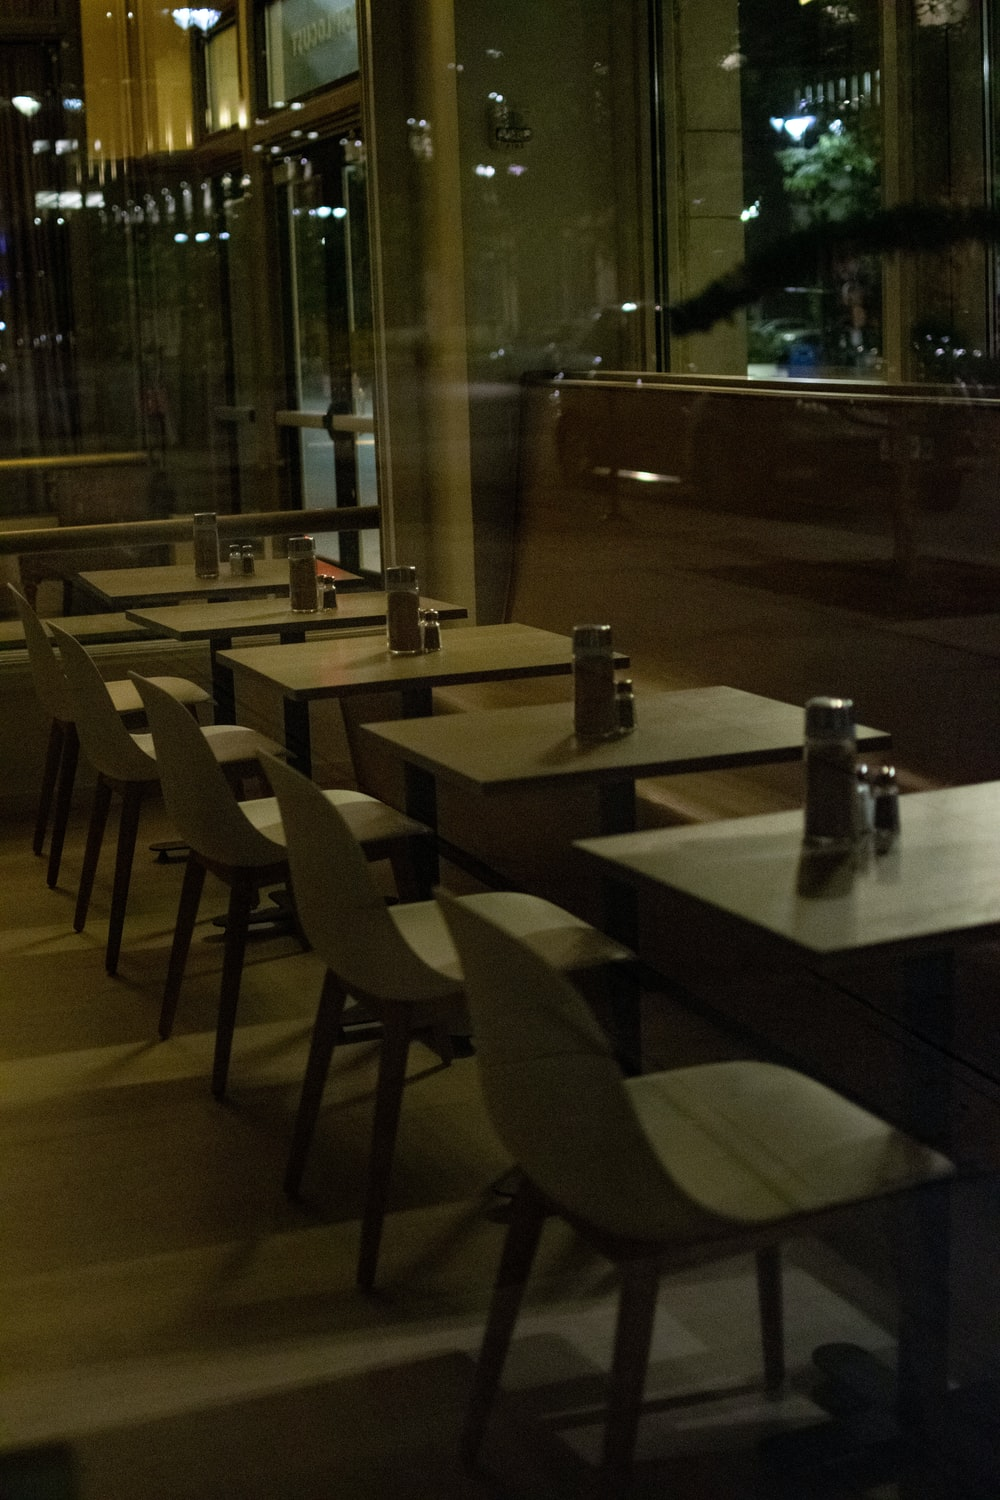 empty brown wooden chairs and tables